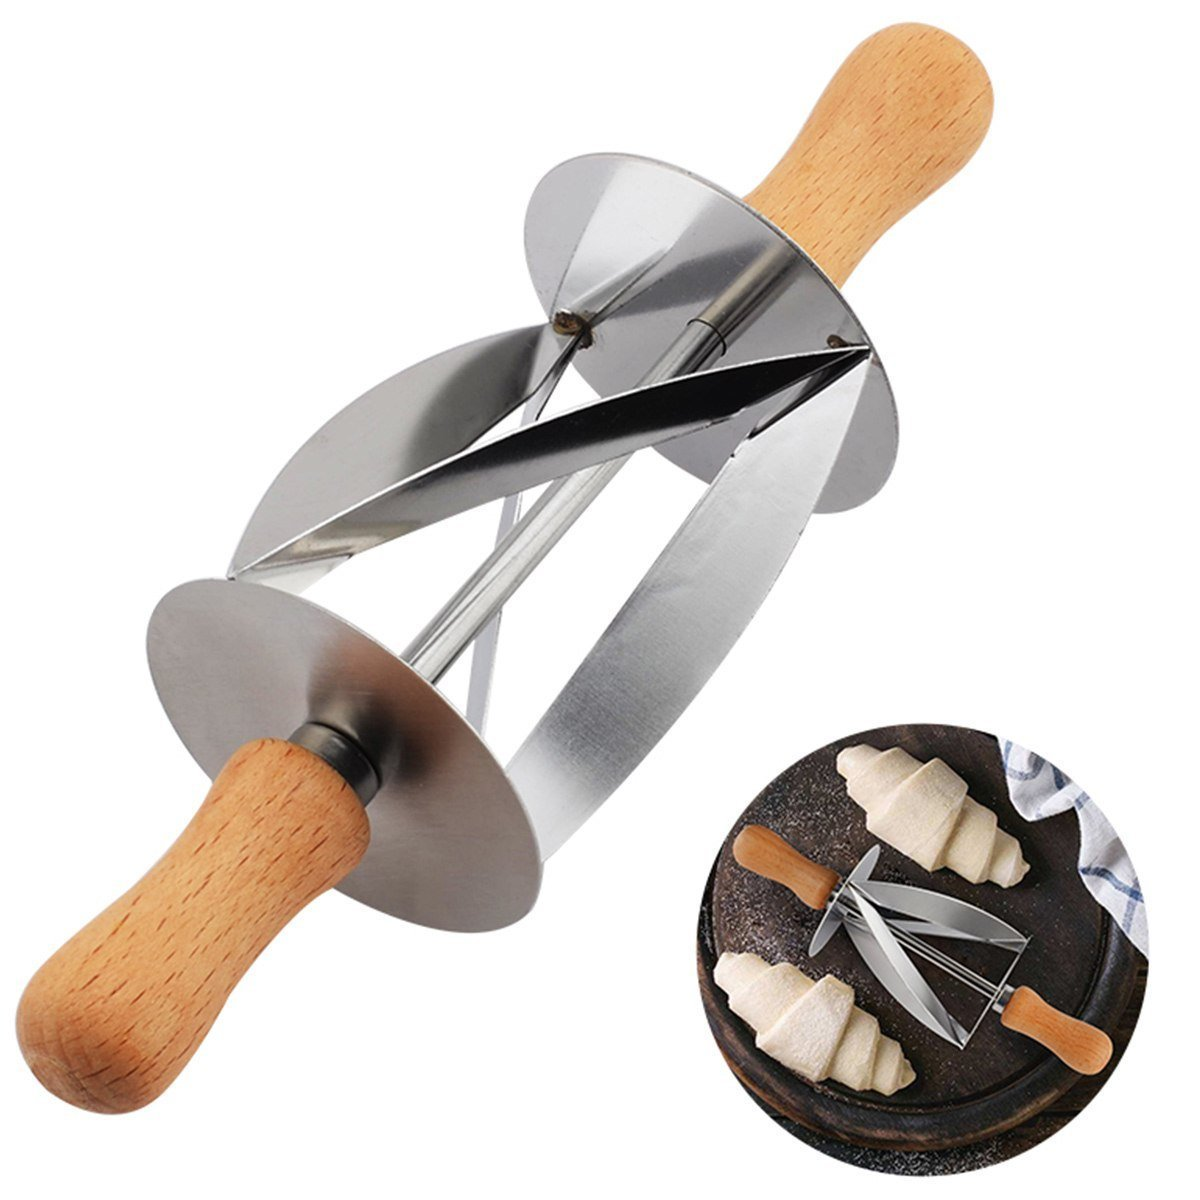 Stainless Steel Rolling Cutter